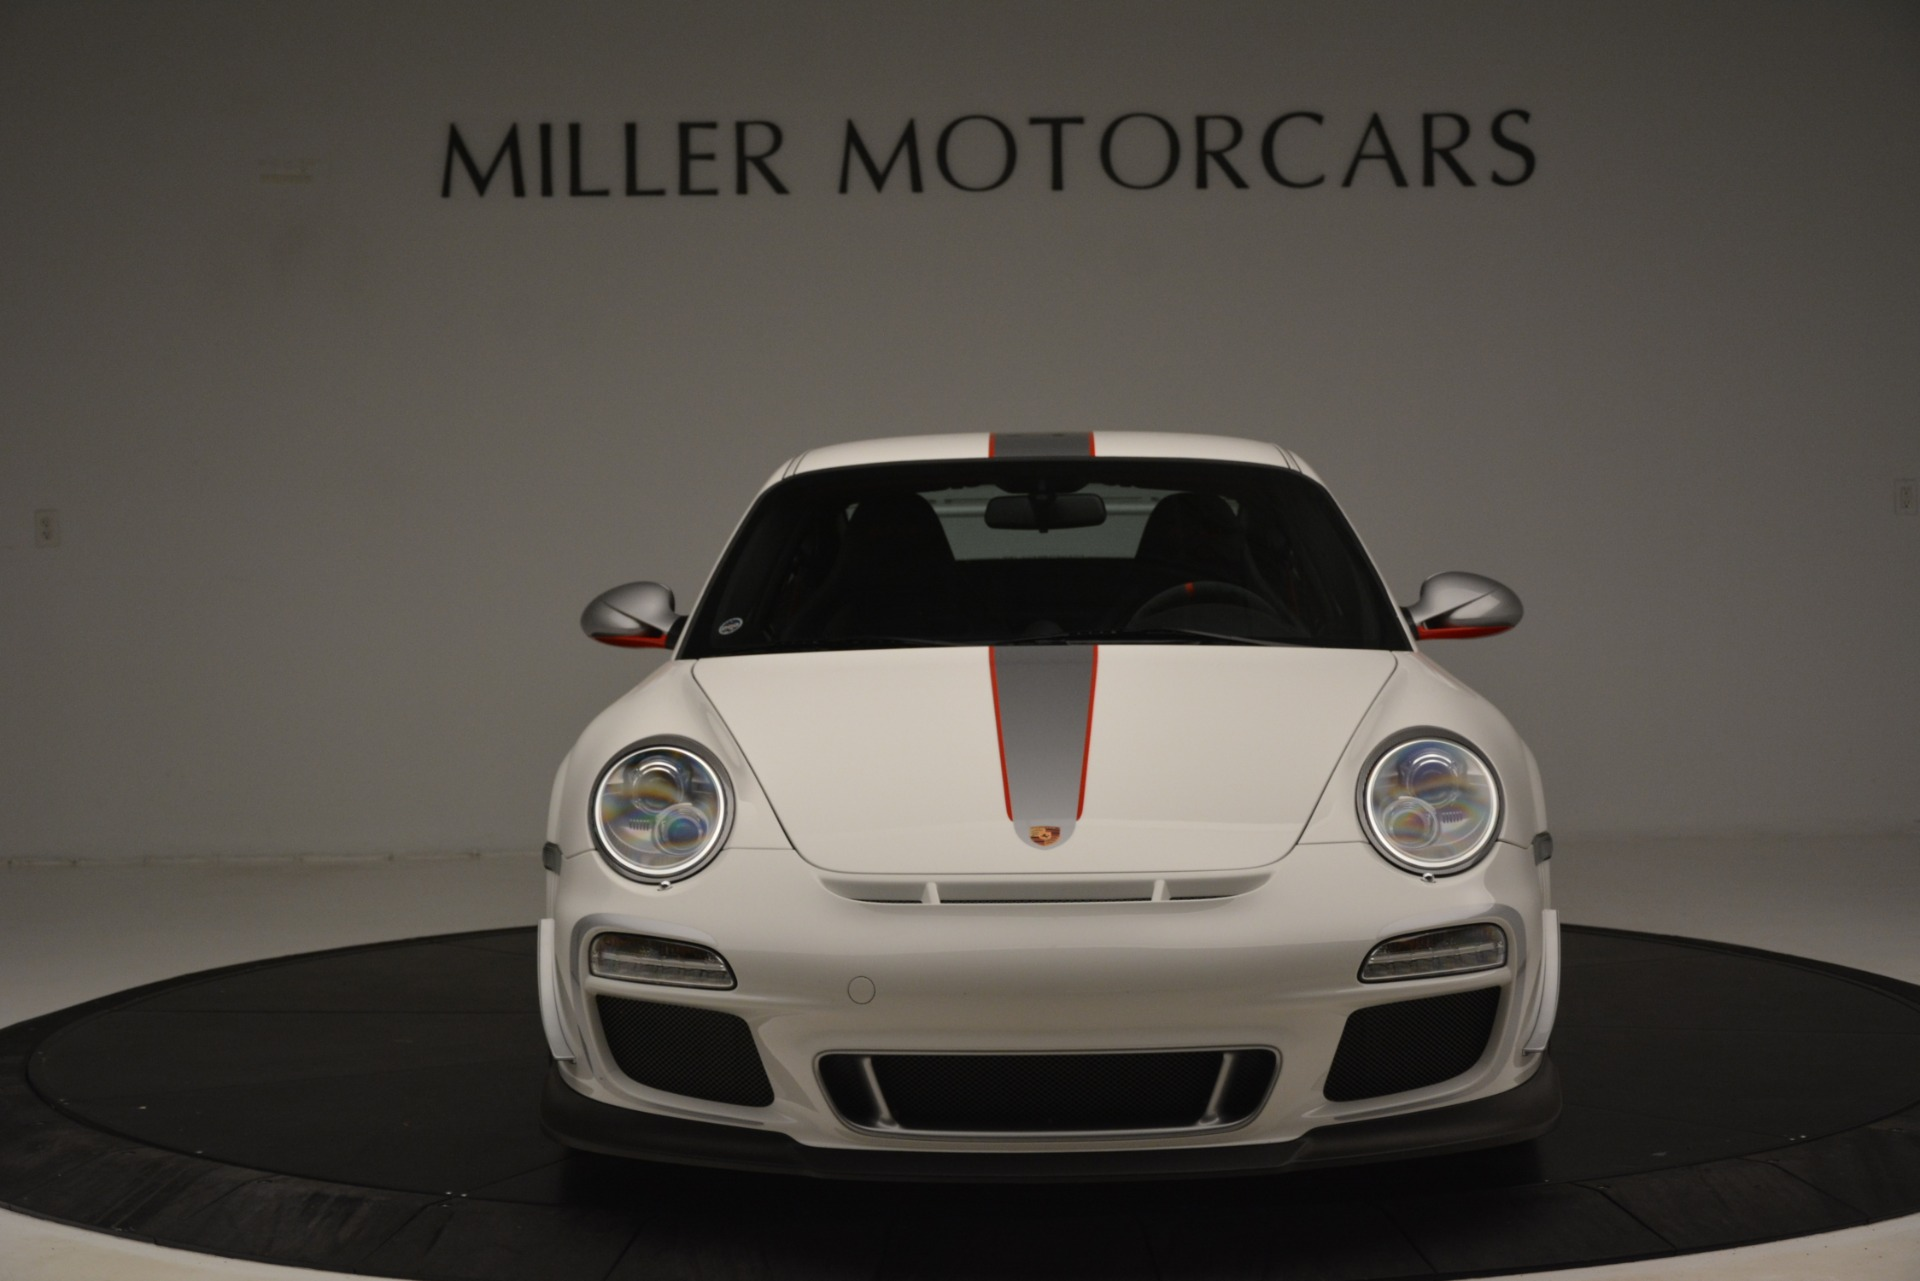 Used 2011 Porsche 911 GT3 RS 4.0 For Sale In Greenwich, CT 3188_p7